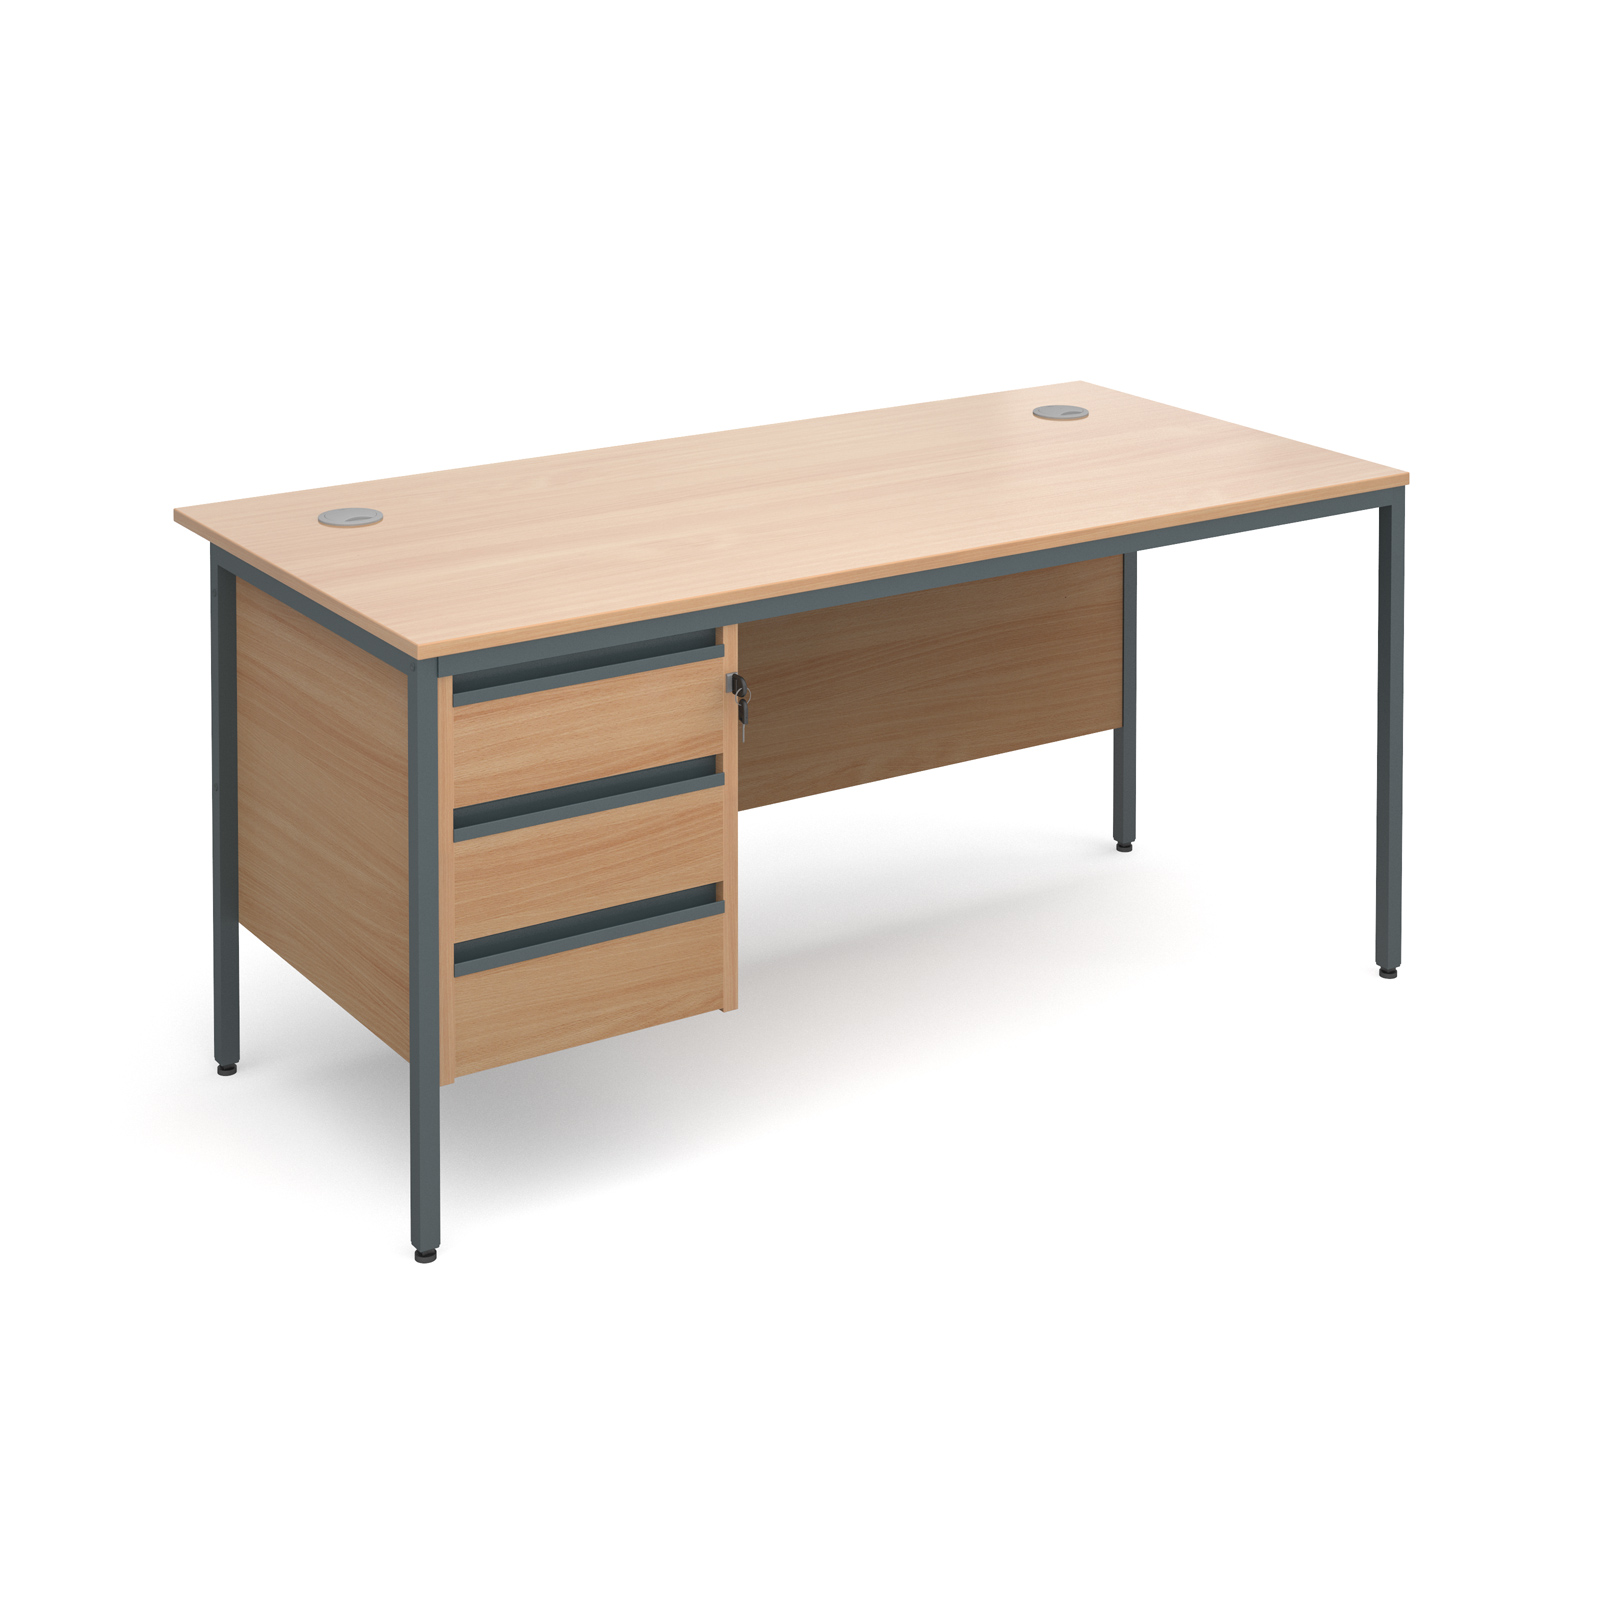 Maestro H frame straight desk with 3 drawer pedestal 1532mm - beech